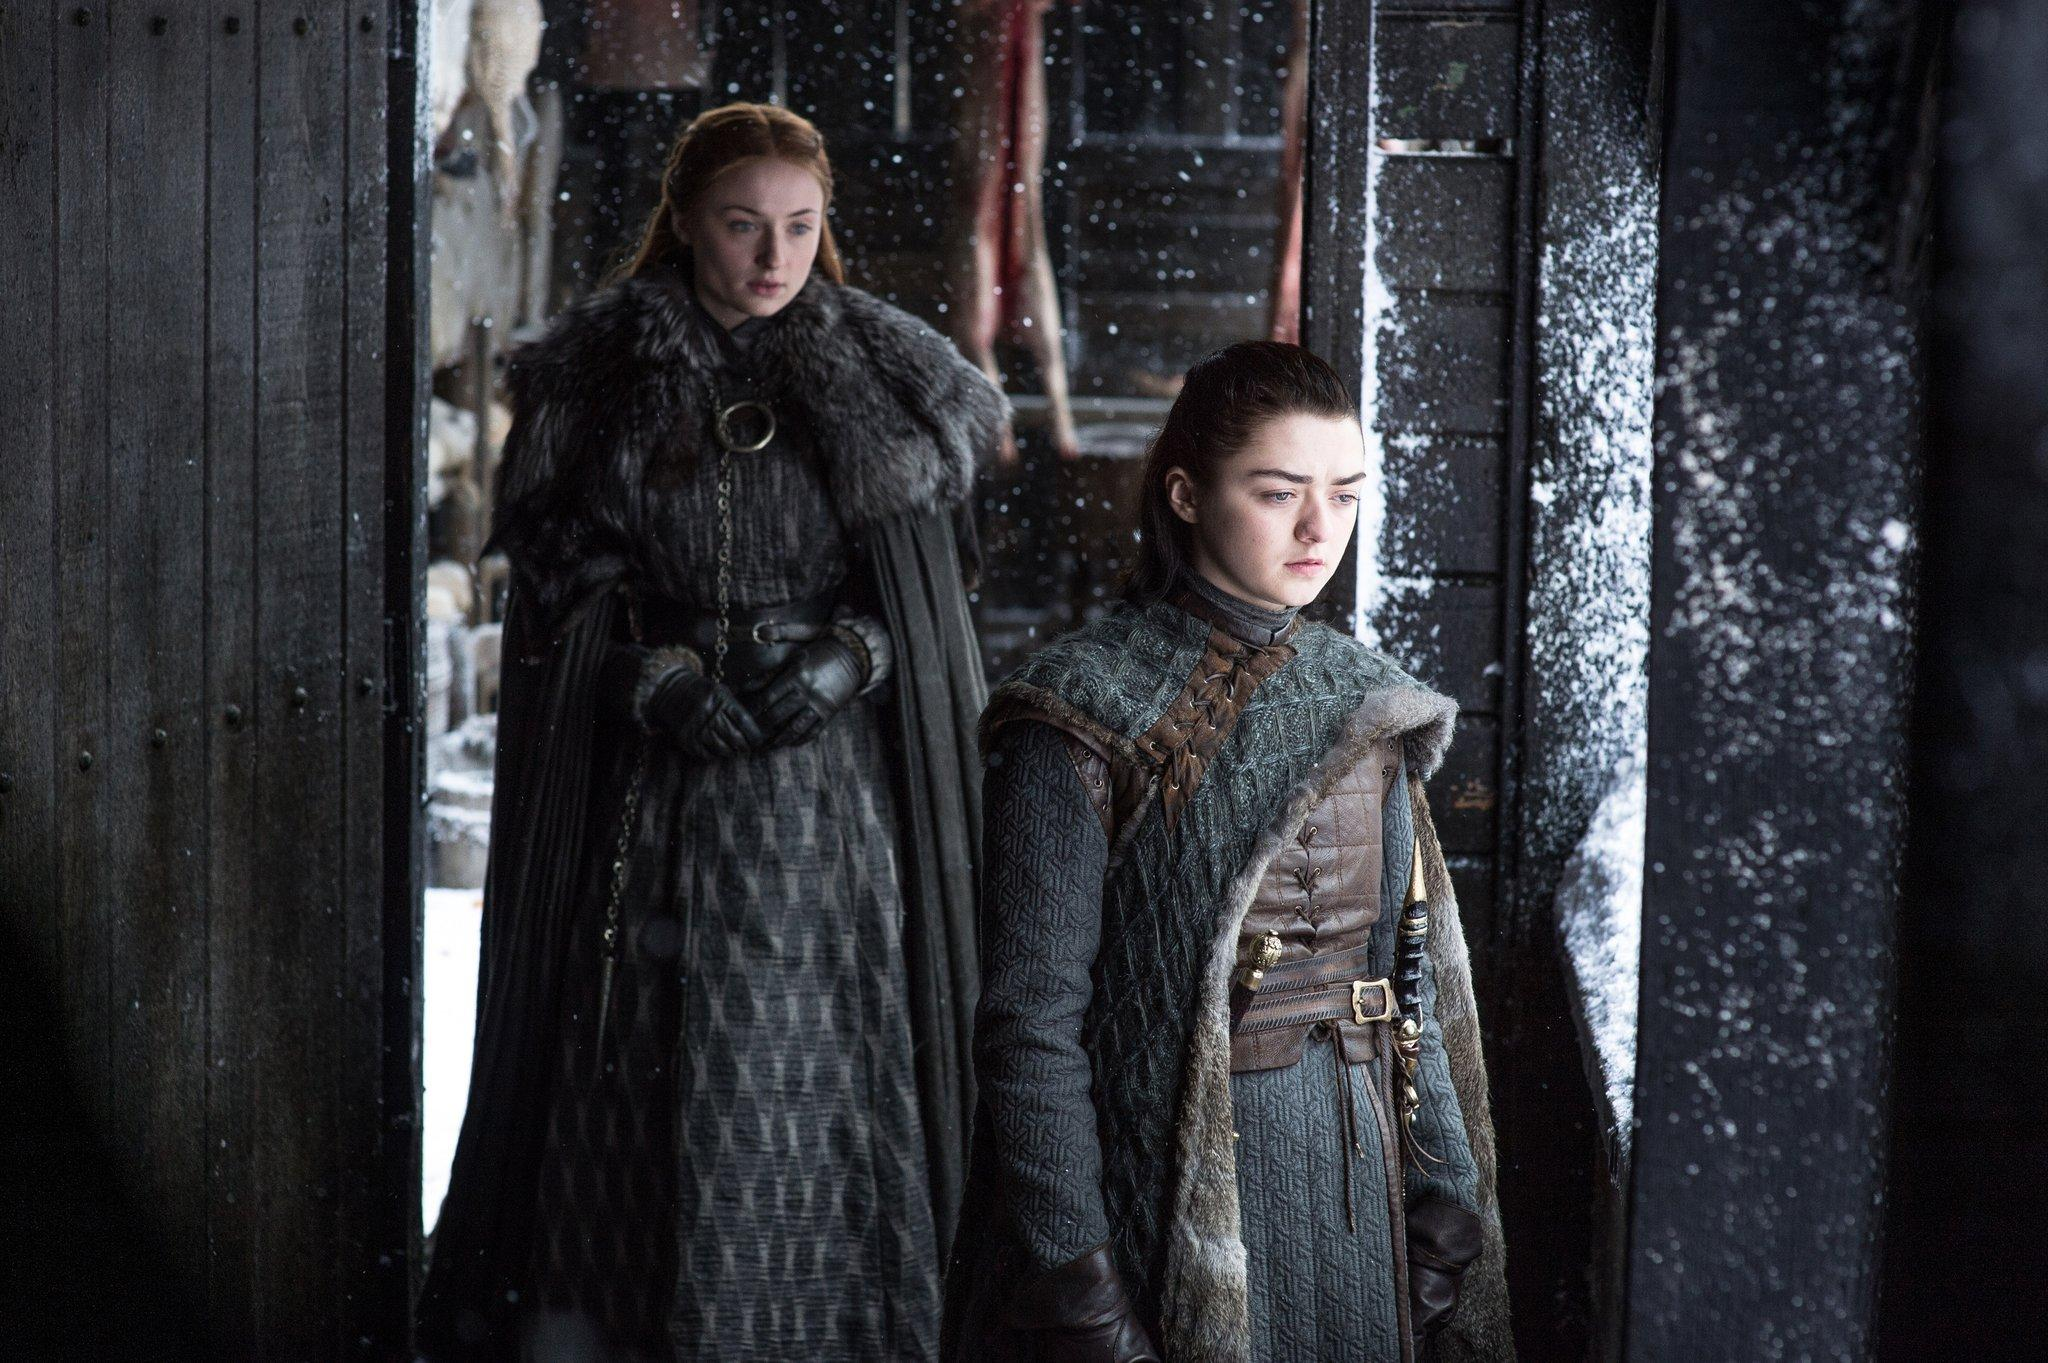 Game of Thrones season 7 episode 7 title The unexpected